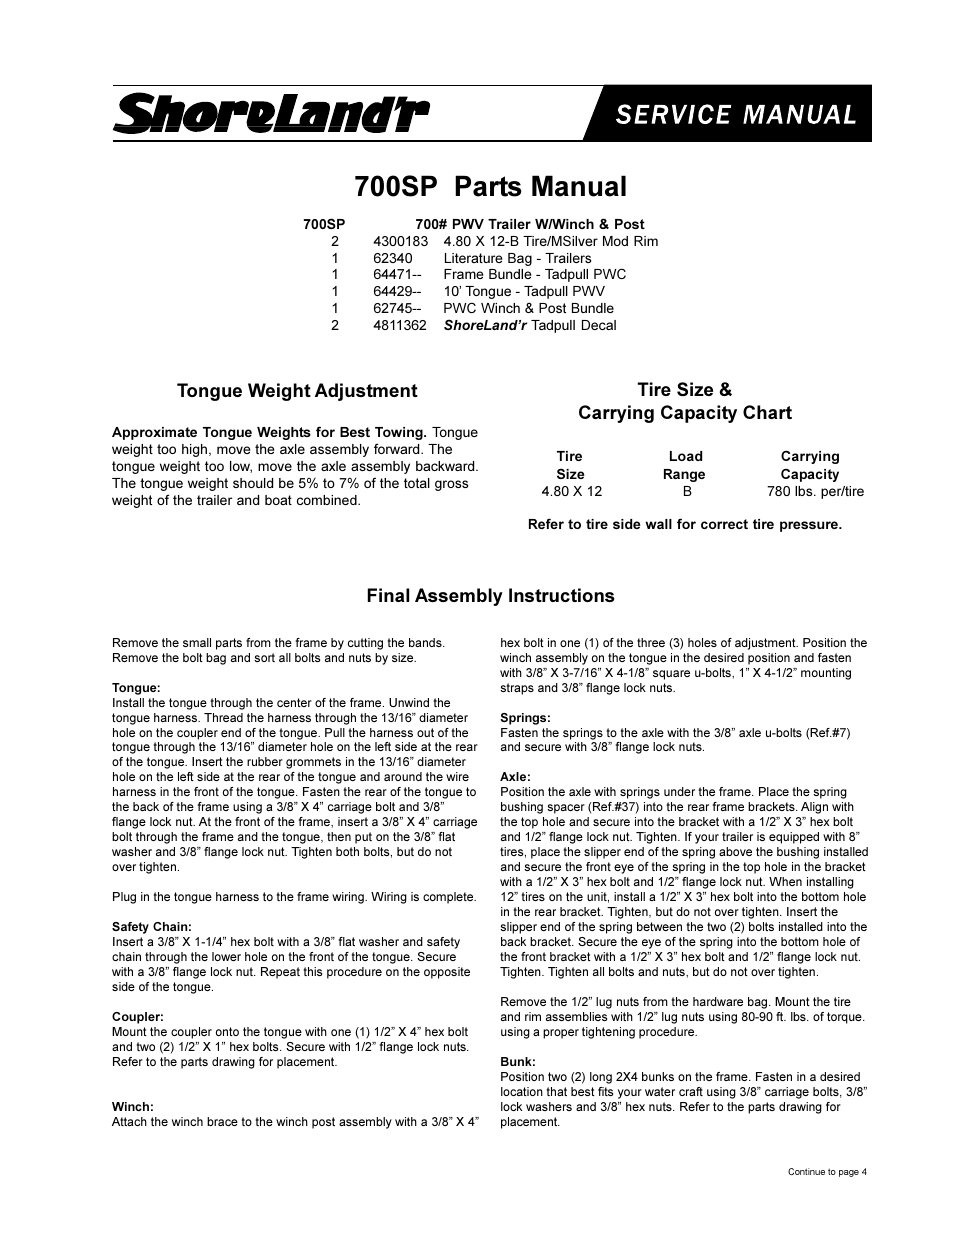 ShoreLand'r 700SP User Manual | 4 pages